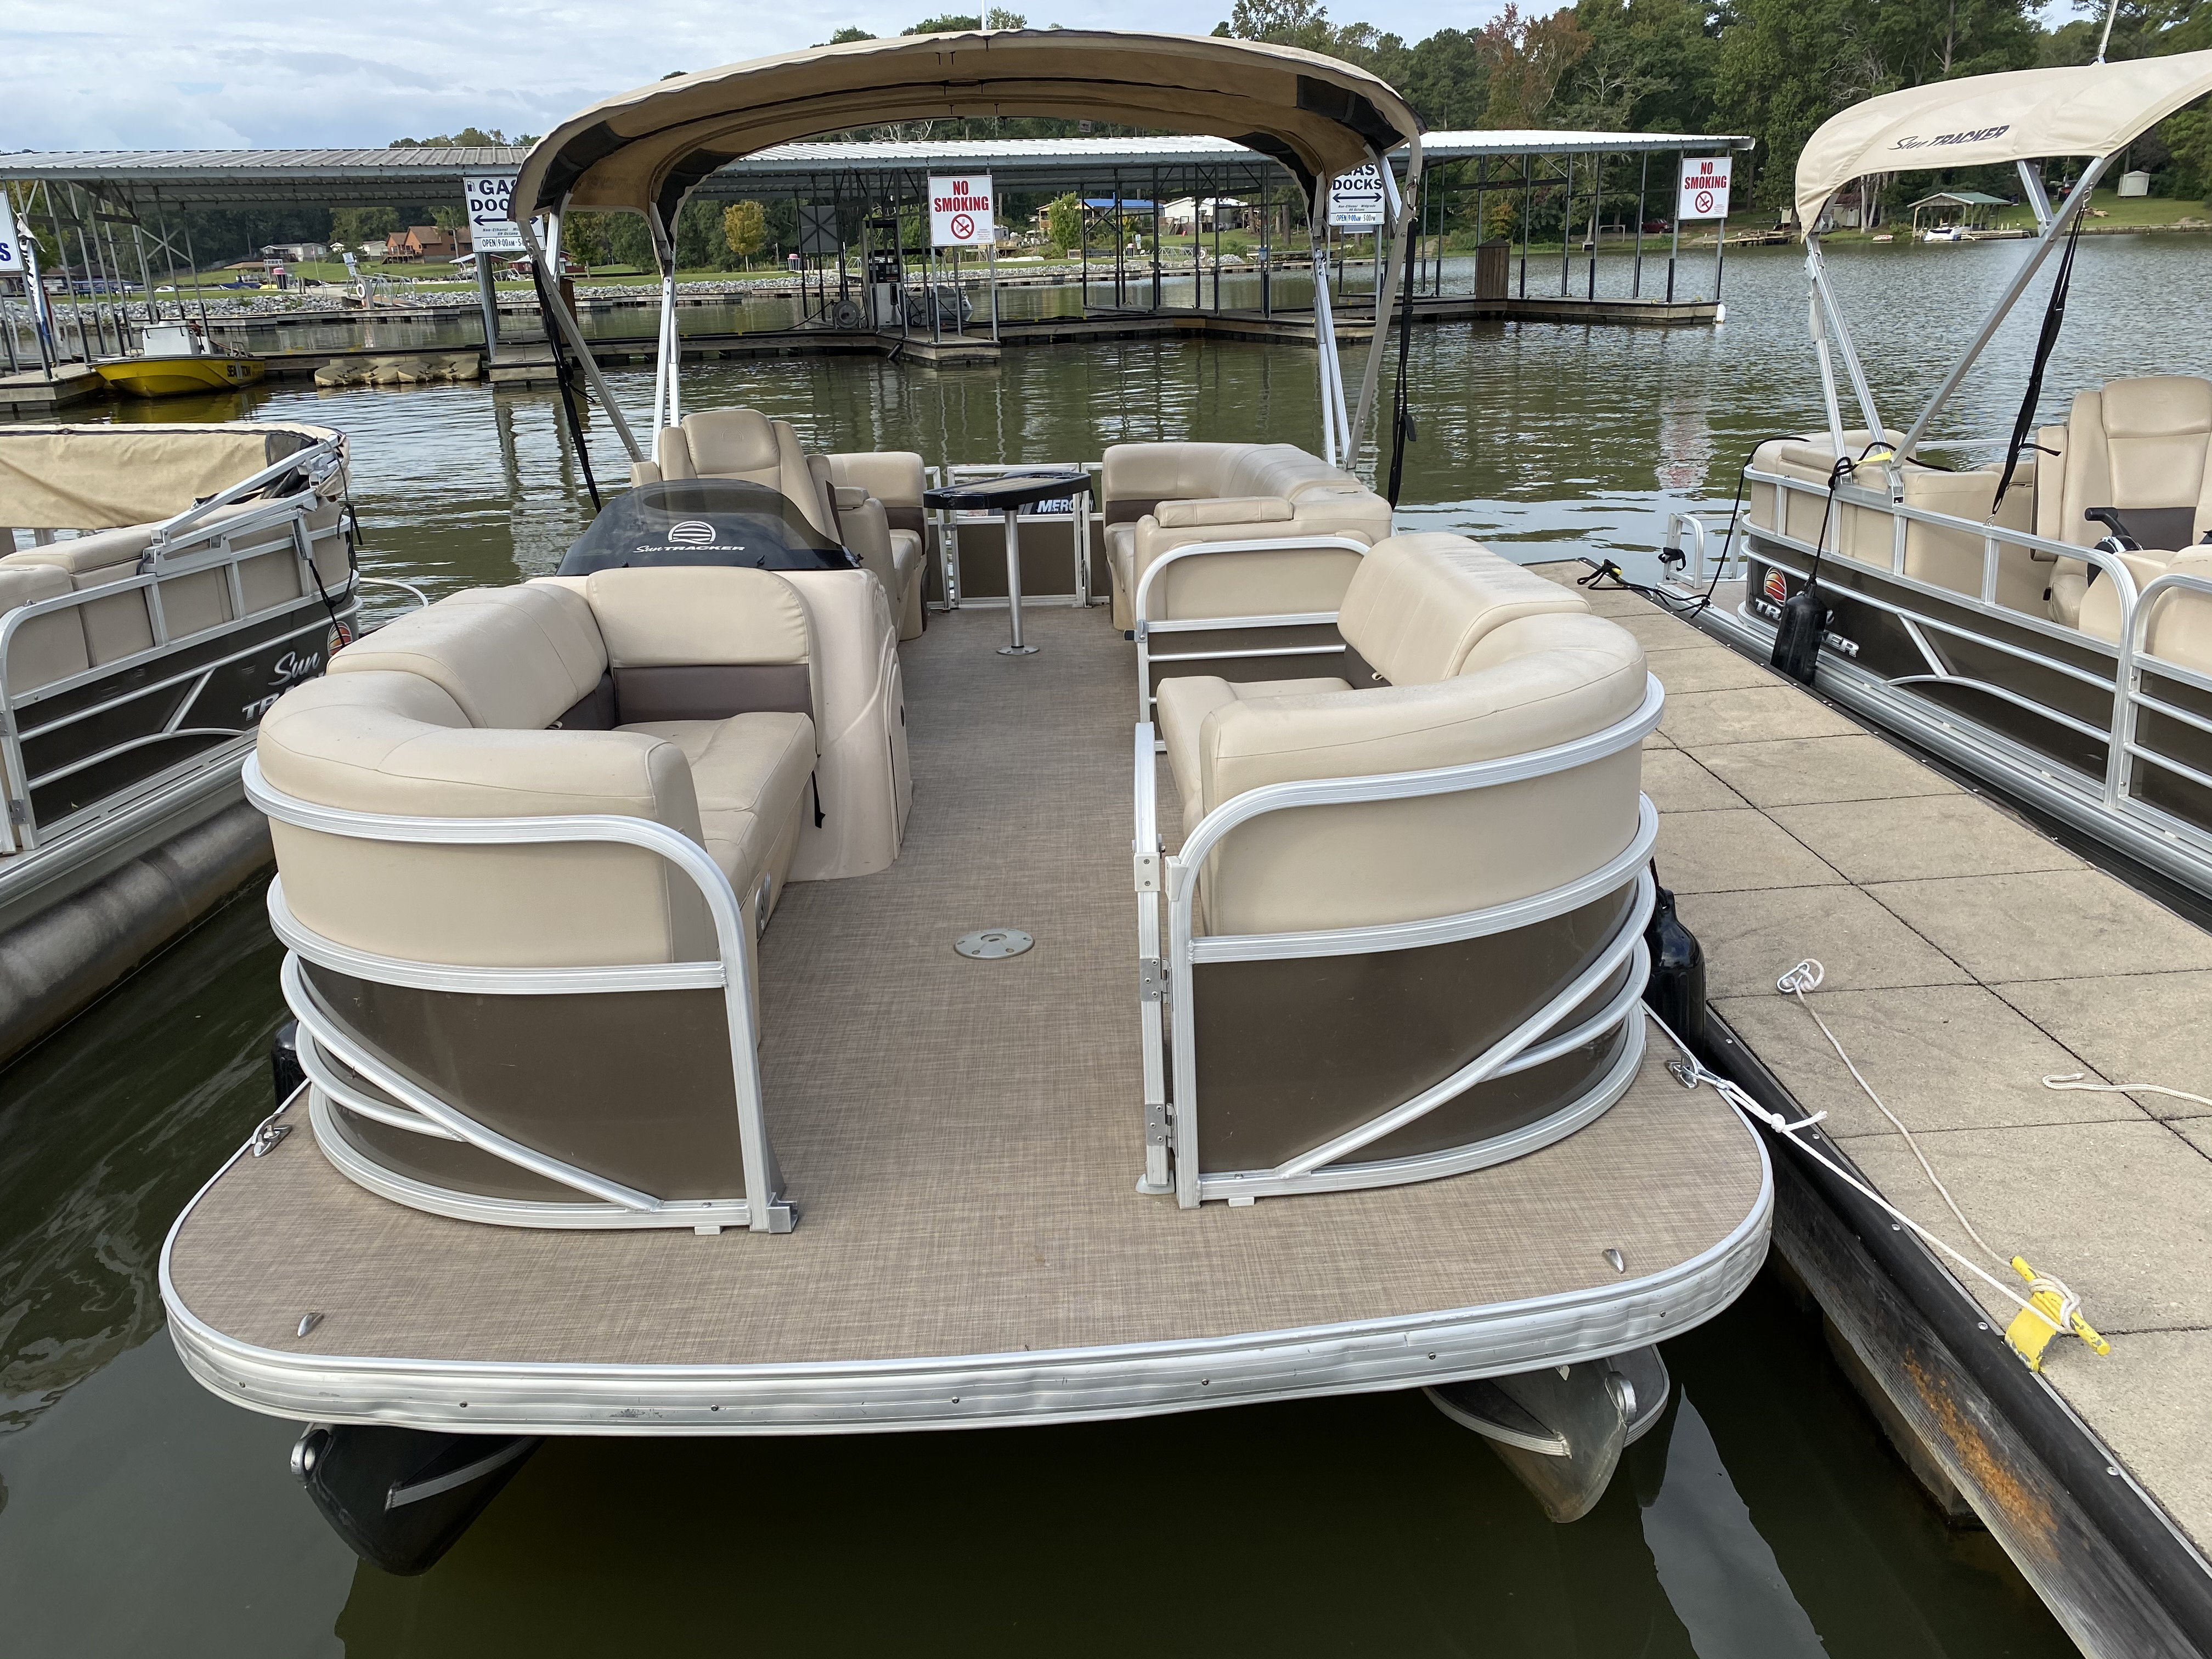 2019 Sun Tracker boat for sale, model of the boat is PARTY BARGE 22 w/ Mercury 115 ELPT 4S & Image # 1 of 26